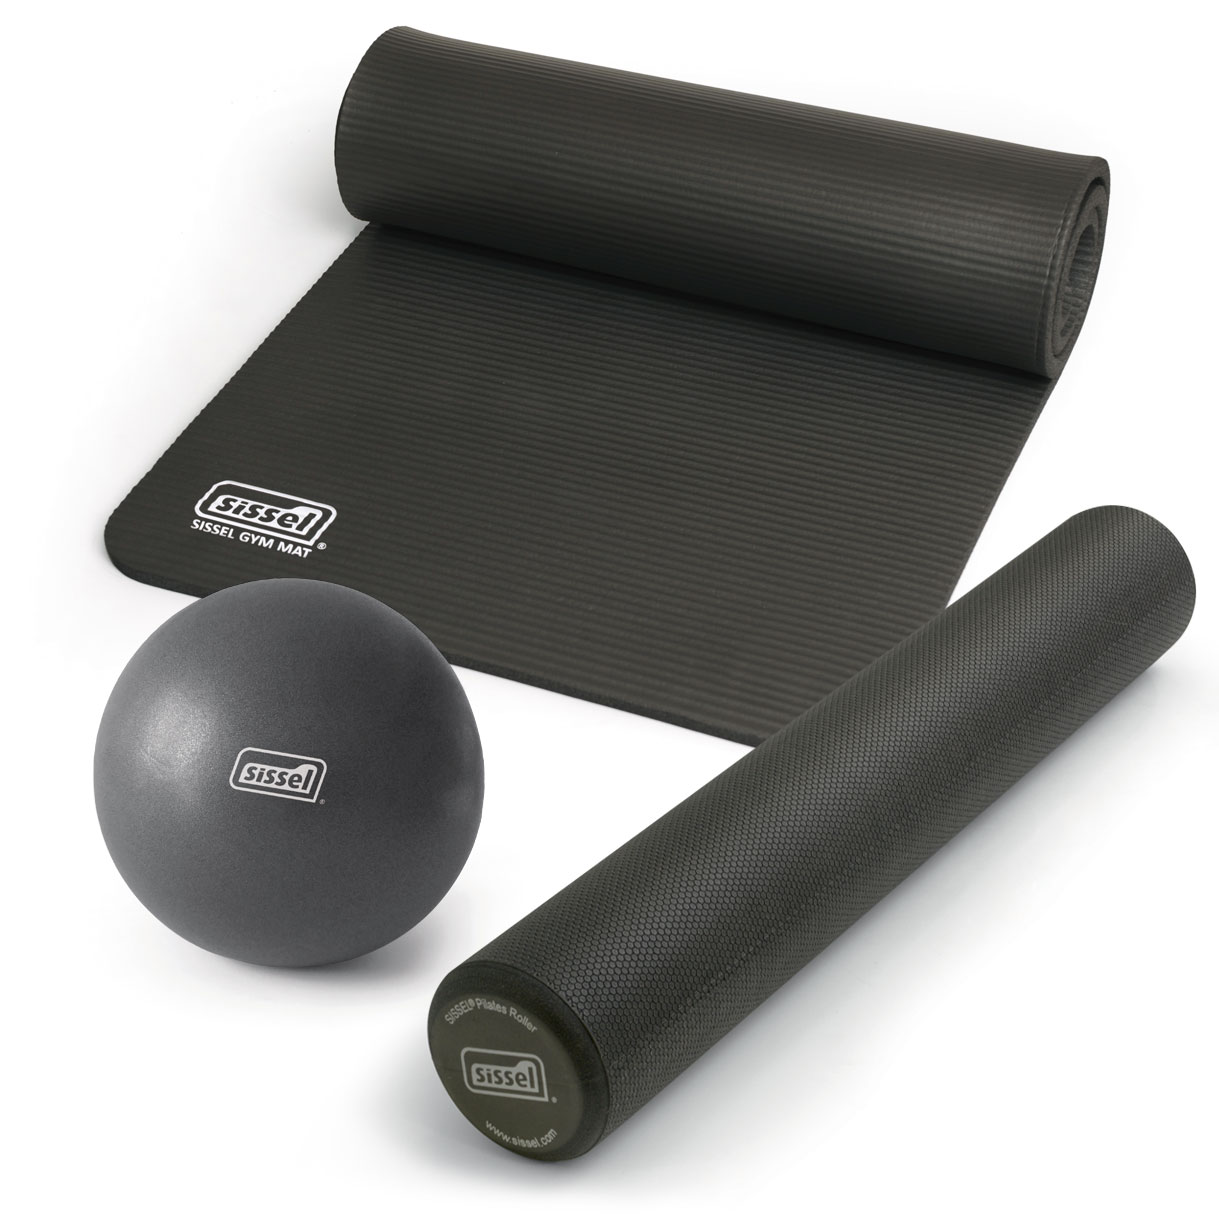 KIT PILATES CASA LITE PREMIUM ANTRACITE: Soft Ball, Rullo e Materassino